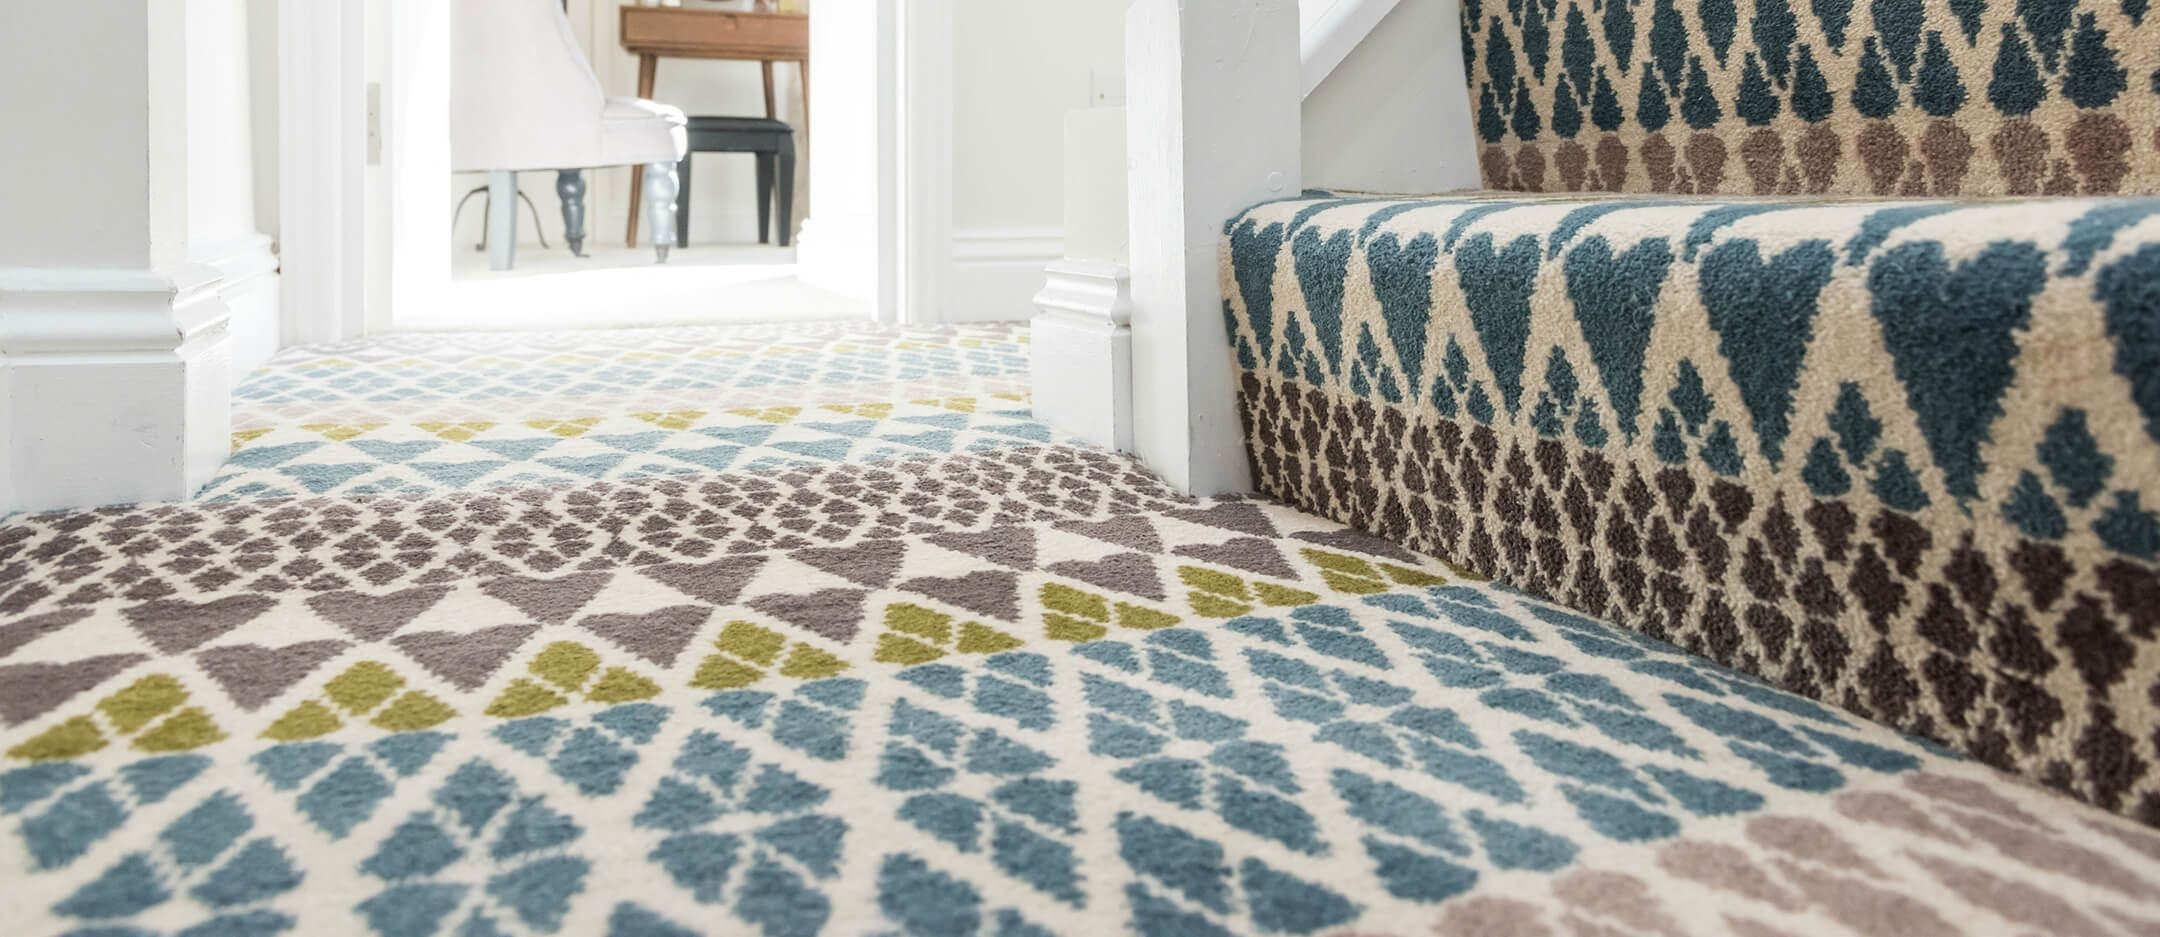 Why You Can Never Fail With Carpet Ocean Flooring Brighton | Zig Zag Stair Carpet | Winding Staircase | Geometric | Metal Bar On Stair | Red | Traditional